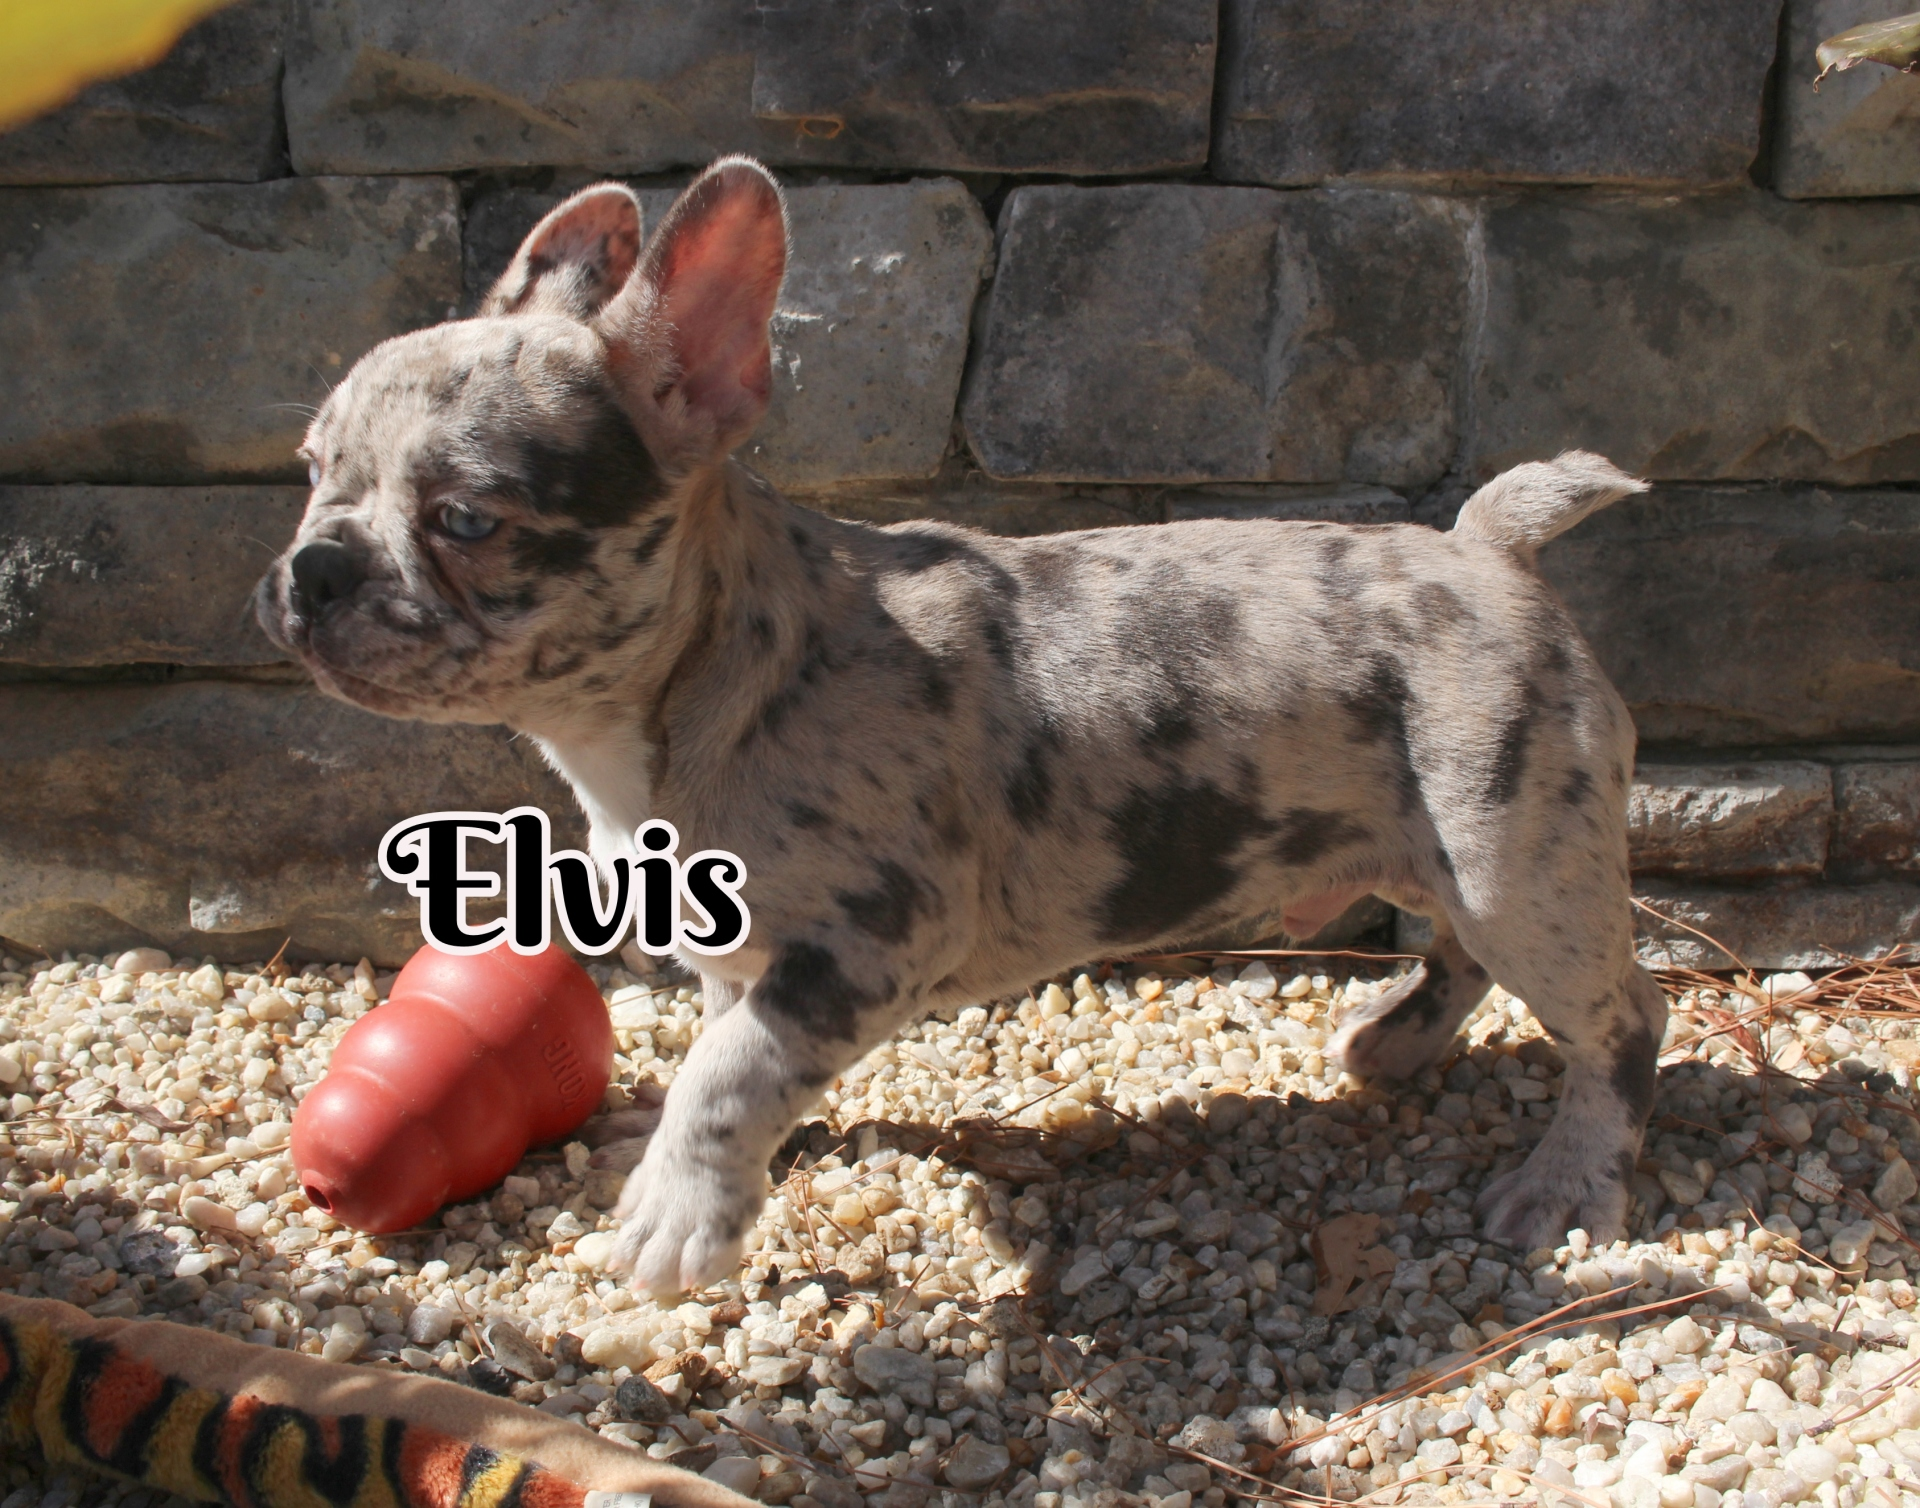 #FrenchBulldogPuppies #MerleFrenchBulldog #Frenchie #AvailablePuppies #AKCRegFrenchBulldog #SouthernTerritoryFrenchies #Elvis